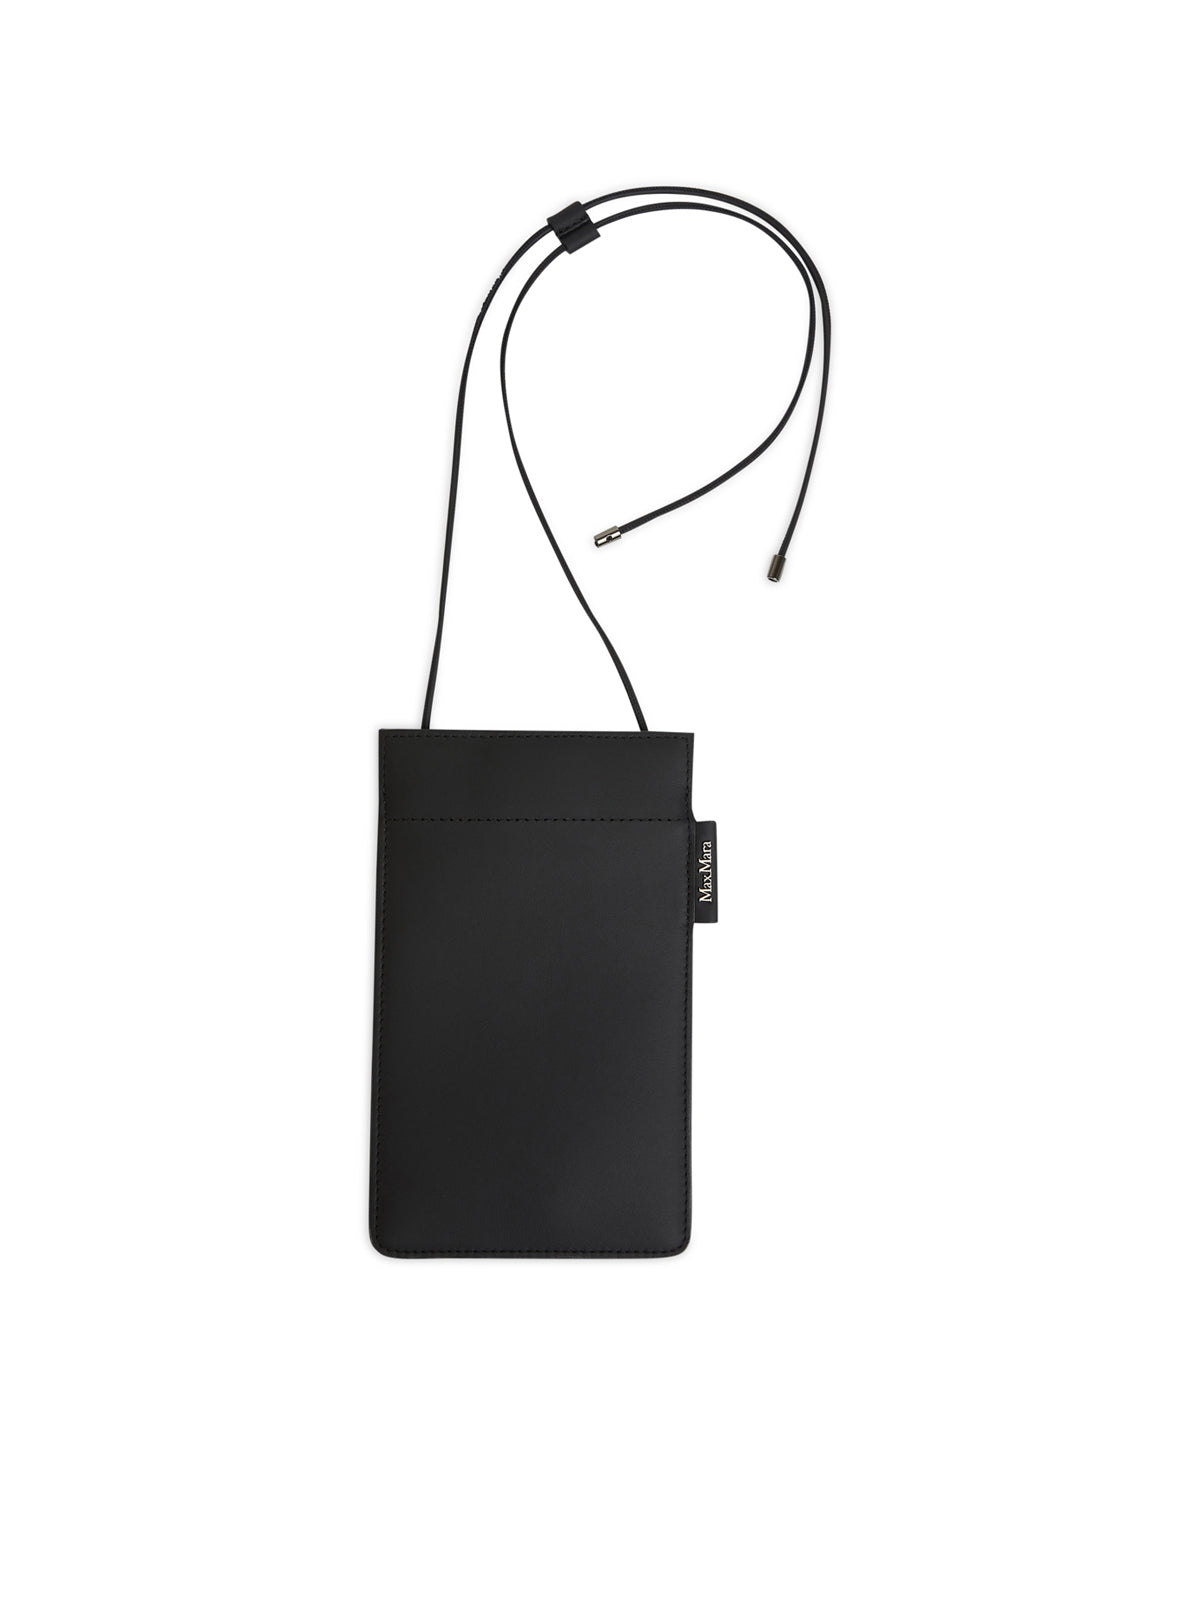 Max Mara LEATHER PHONE COVER